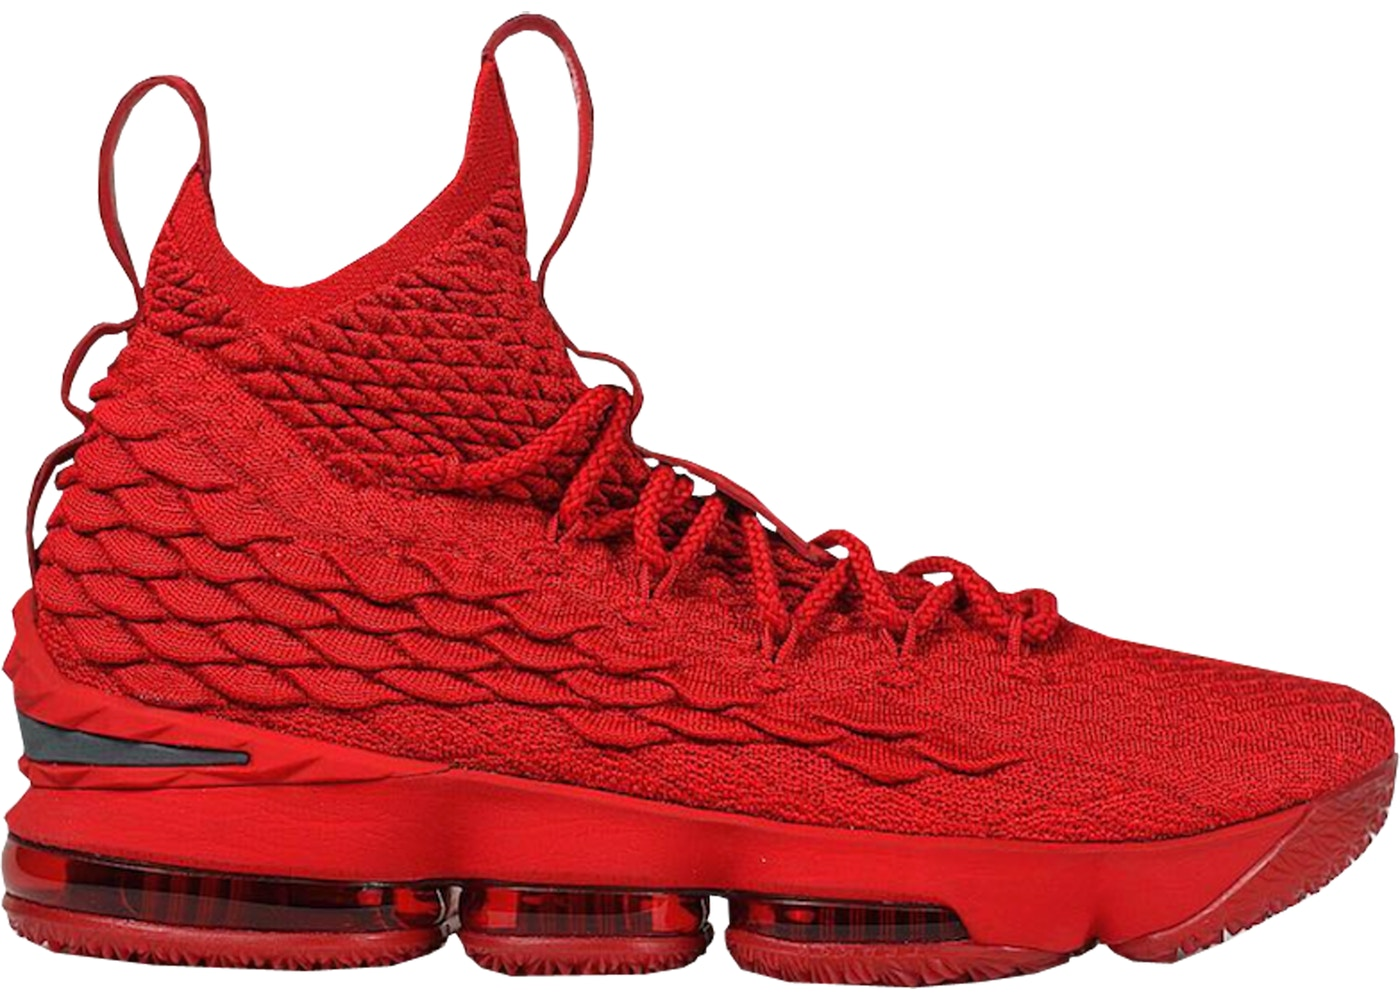 7dc10098164 ... LeBron 15 Ohio State PE  Image via OhioStateFB · Nike LeBron 15 Beat  Michigan ...